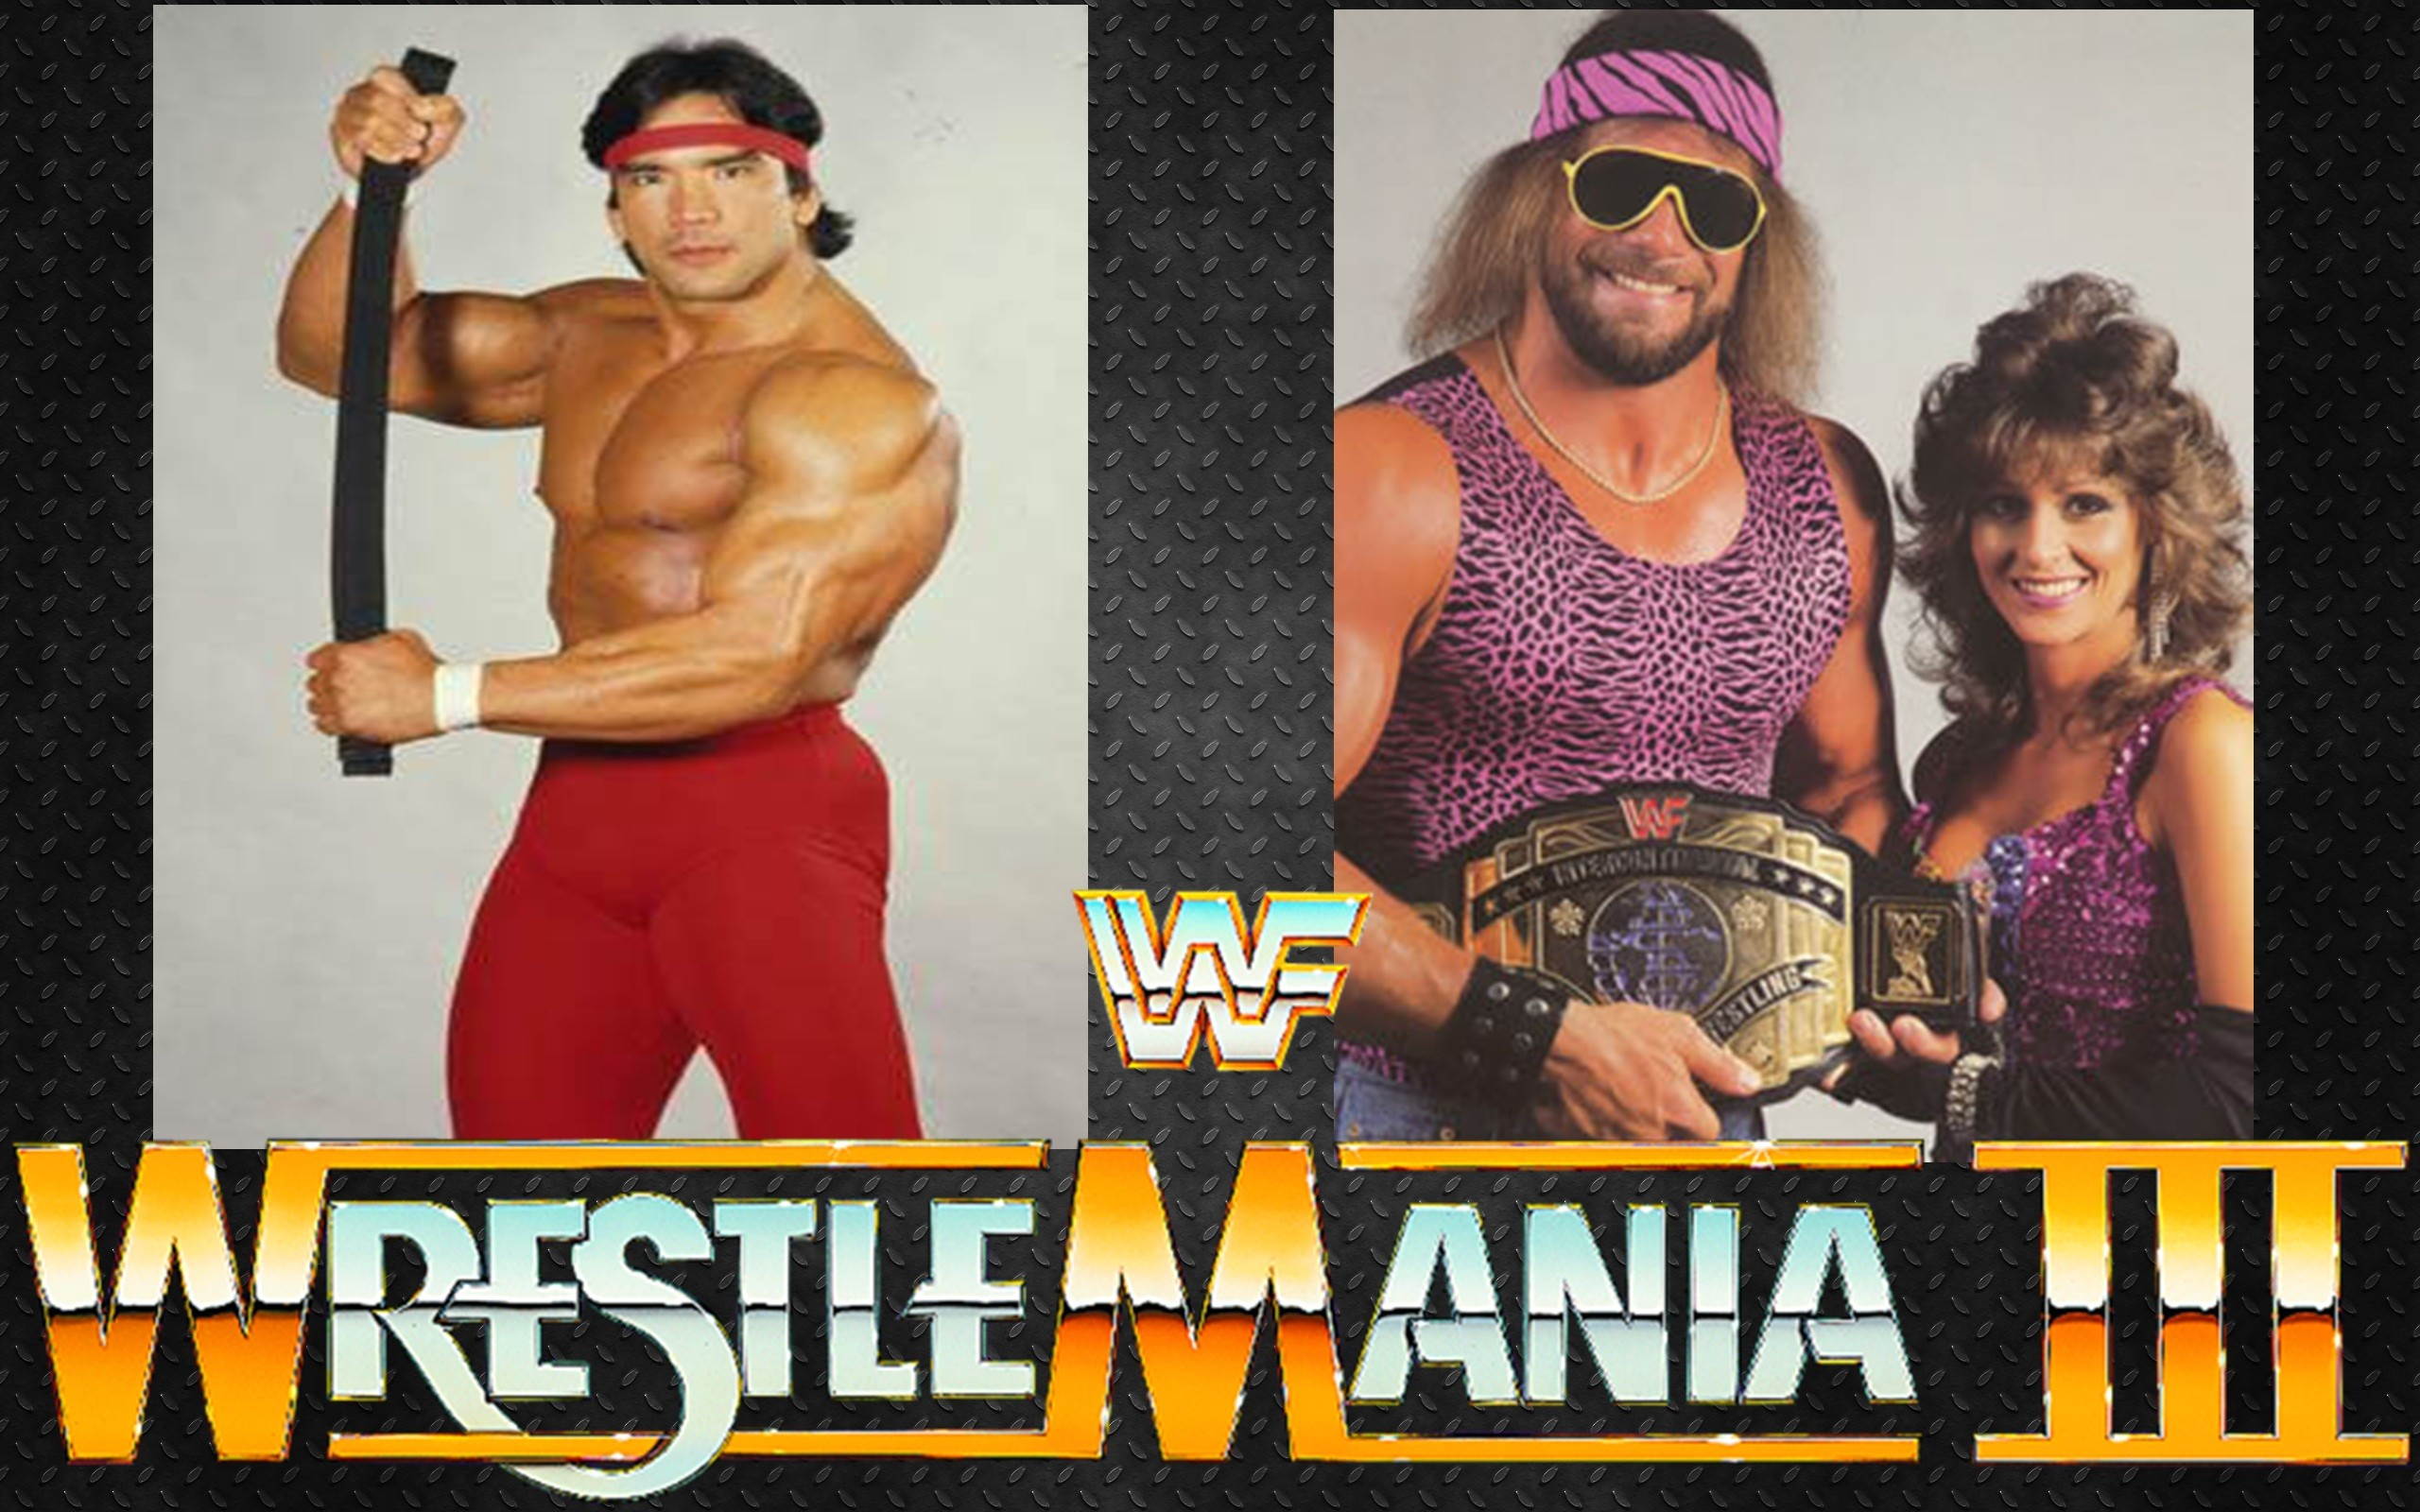 2560x1600 WrestleMania Rewind: Randy Savage vs. Ricky Steamboat at WrestleMania III -  Slide 1 of 3